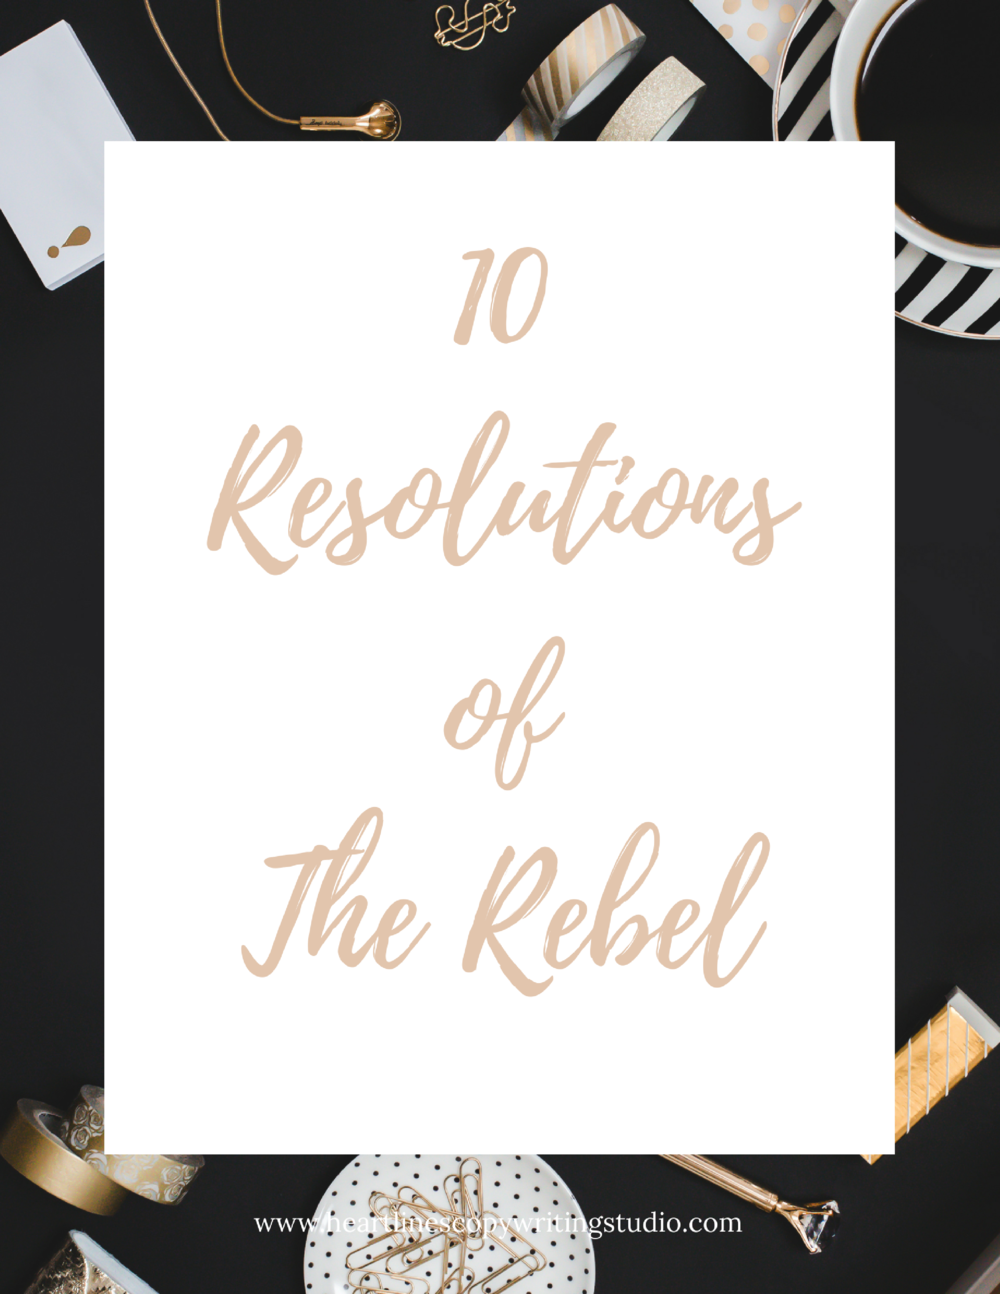 Download the PDF version of The 10 Resolutions of The Rebel right here.